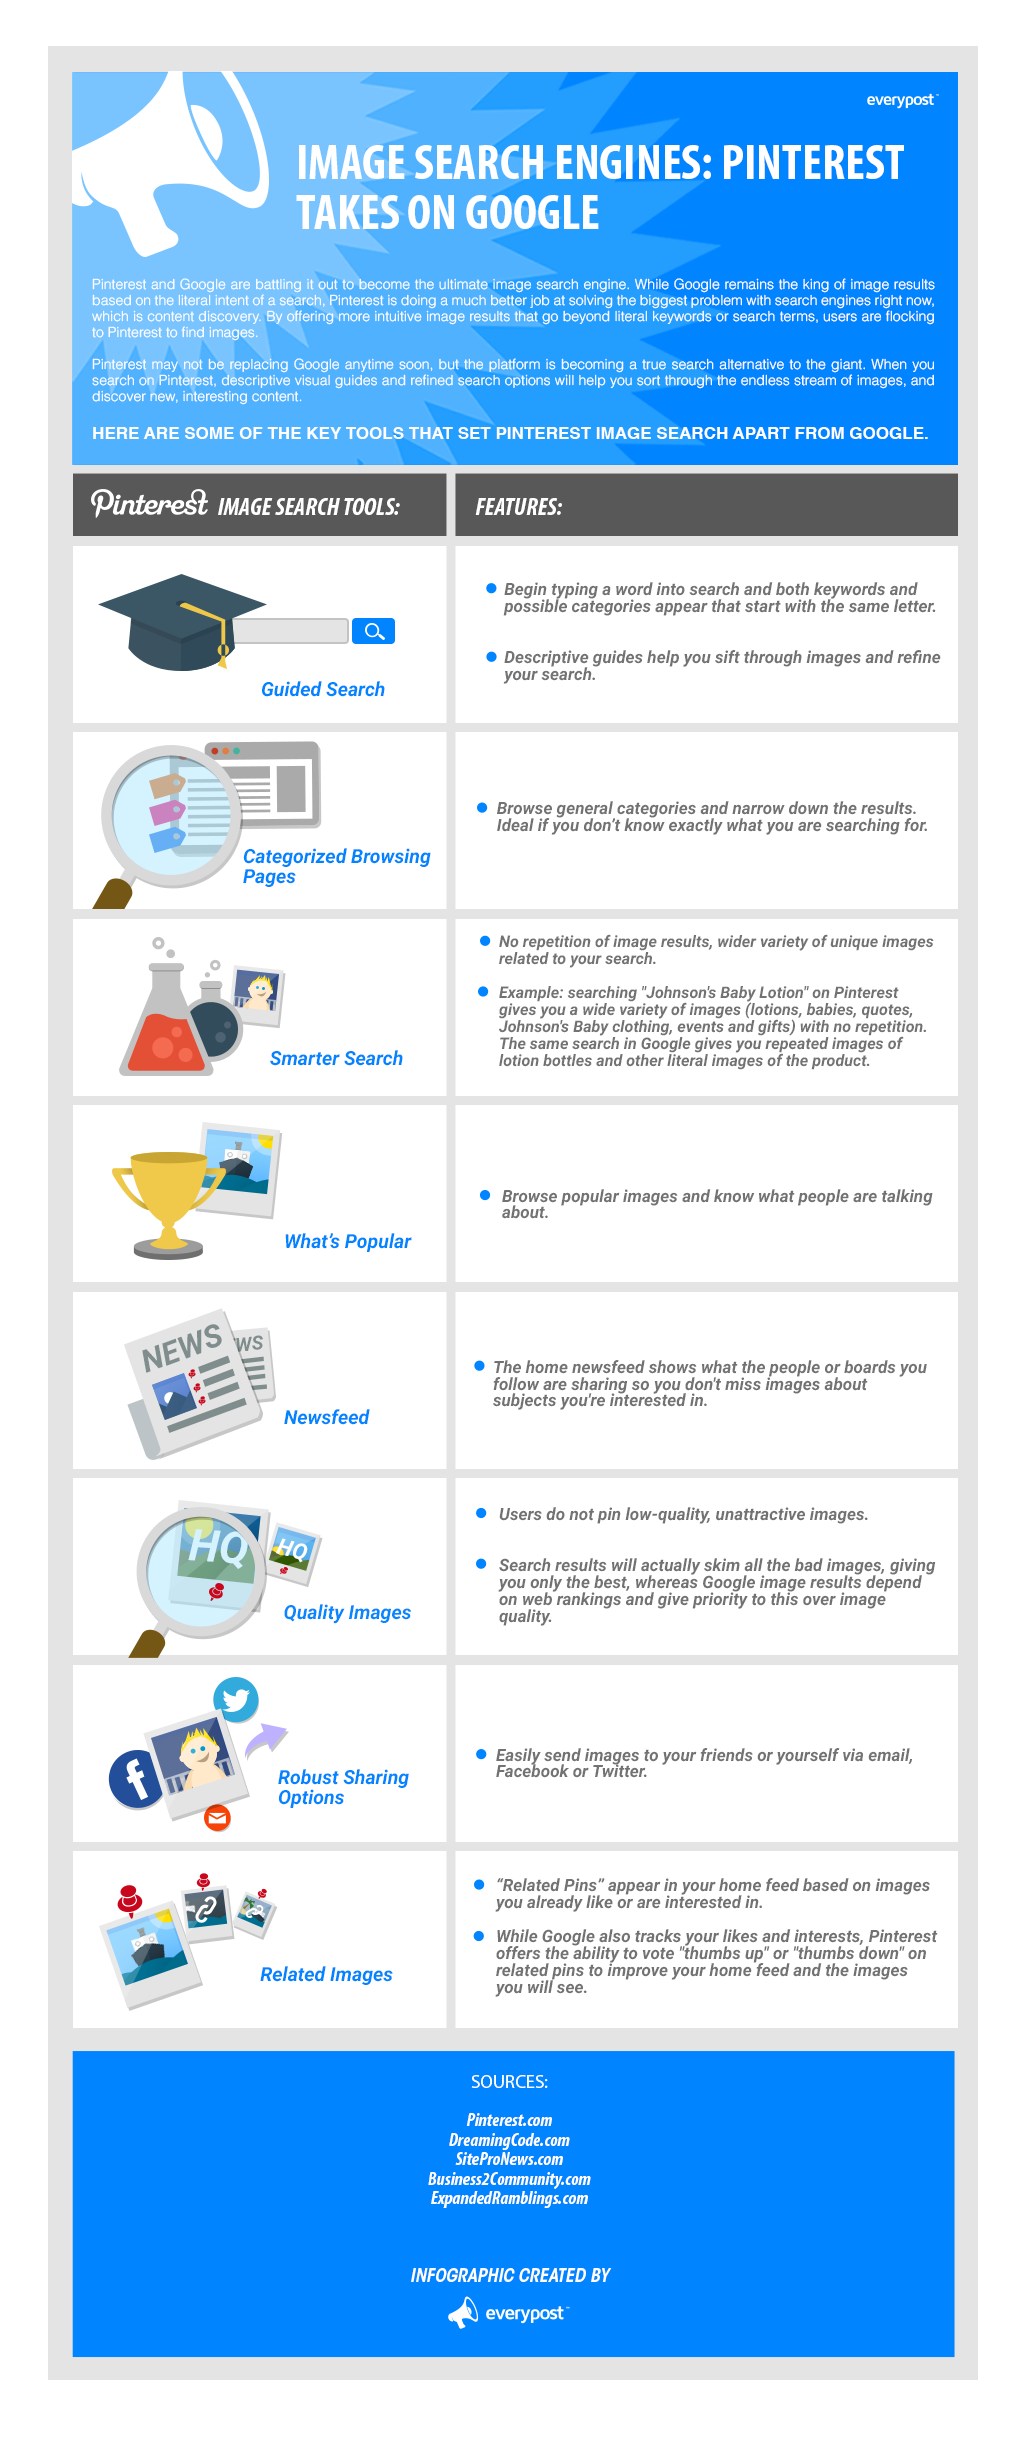 Image Search Engines: Pinterest Takes on Google (Infographic) image GOOGLE PINTEREST INFOGRAPHIC